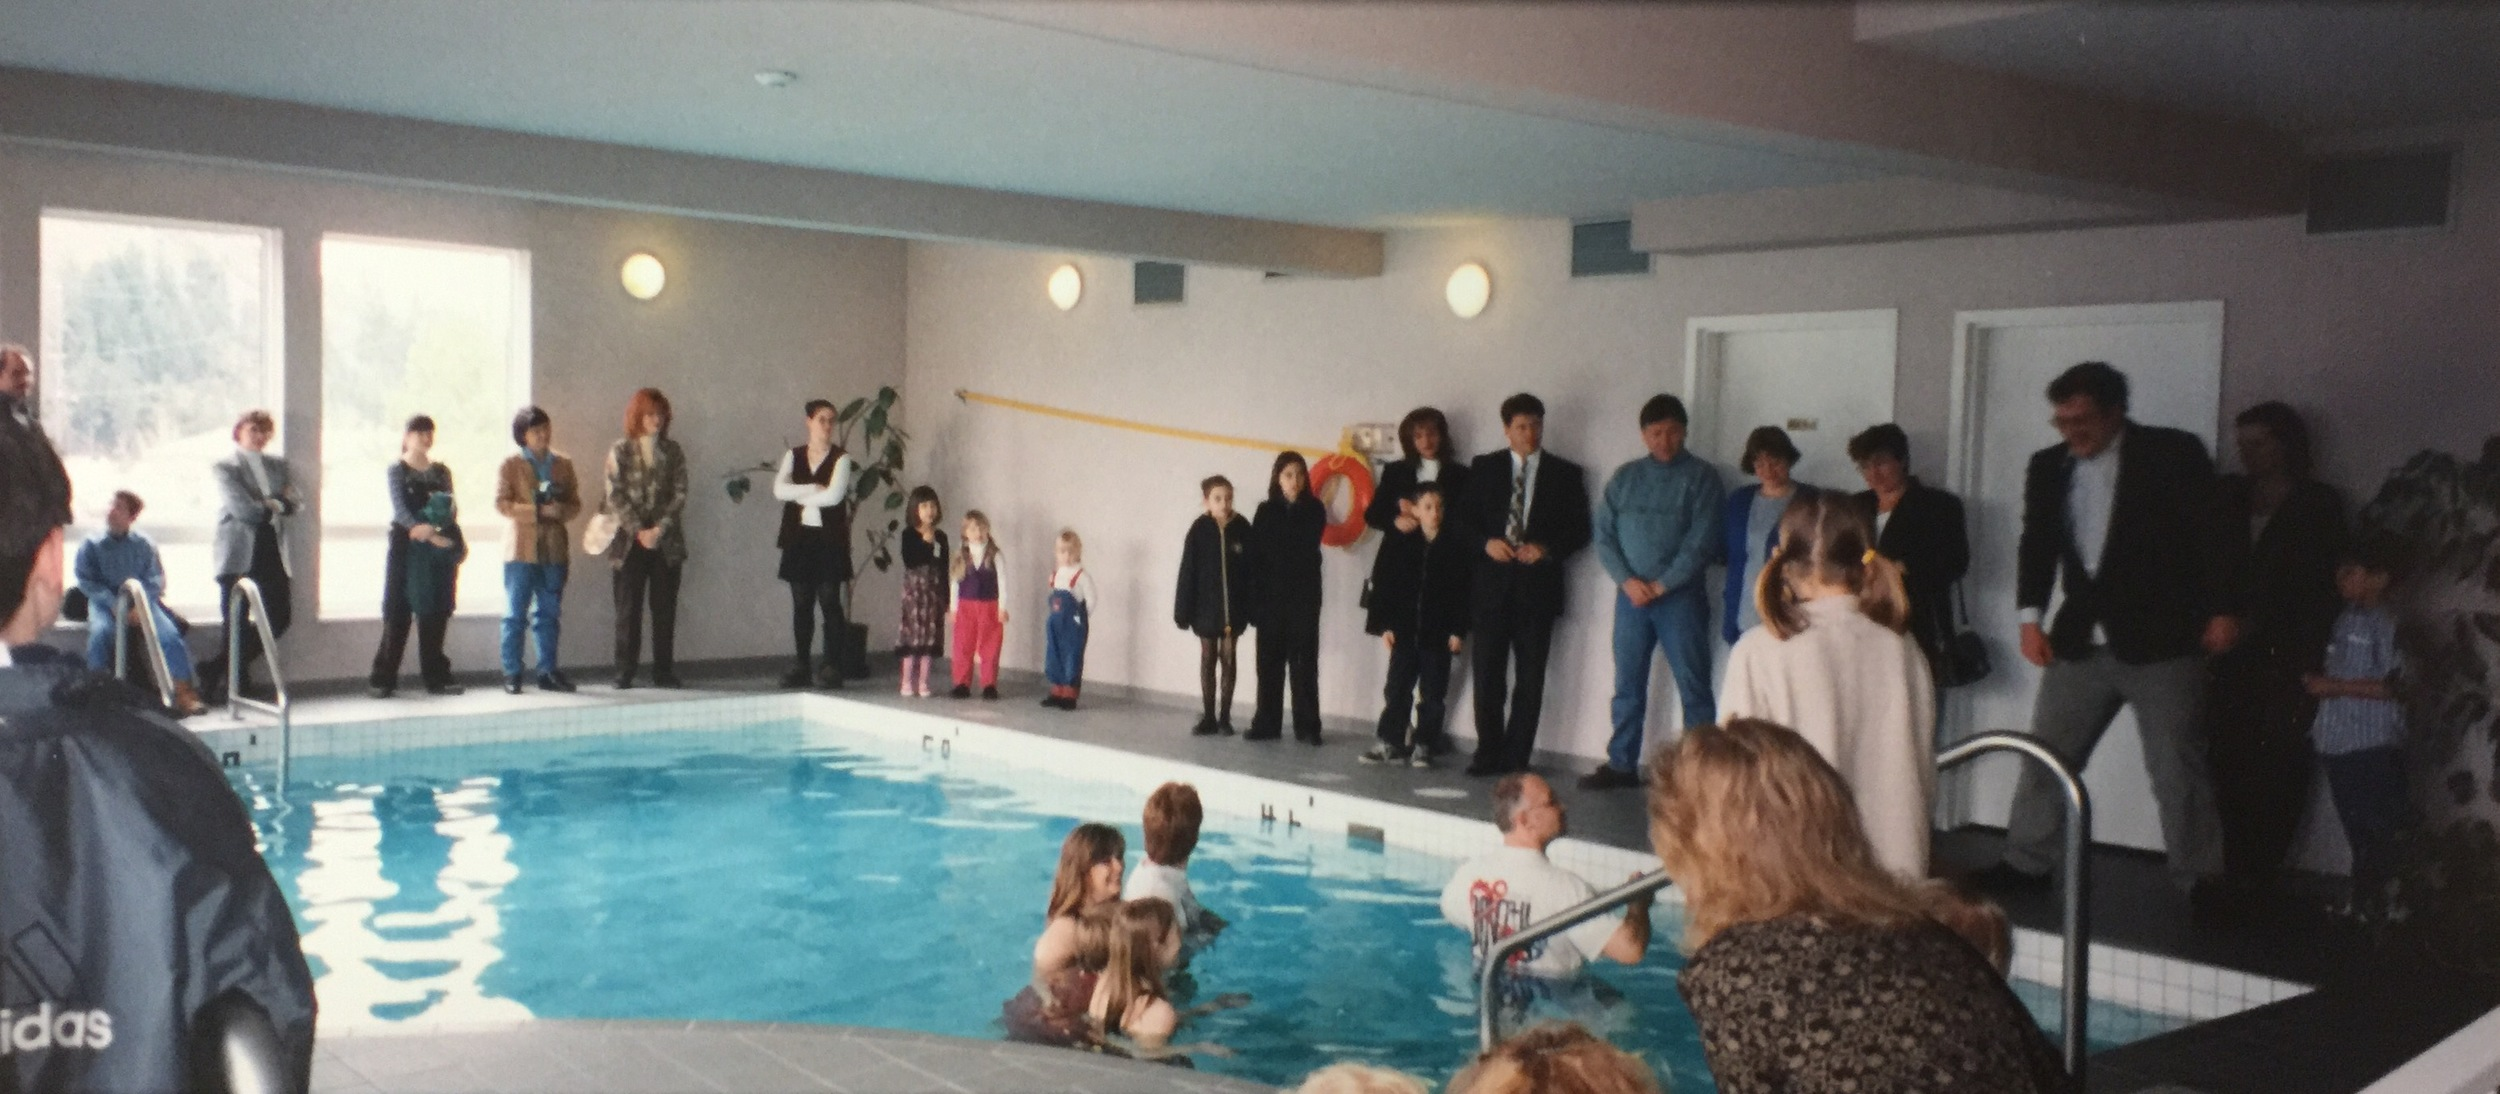 Baptism Sunday in the Hotel Pool